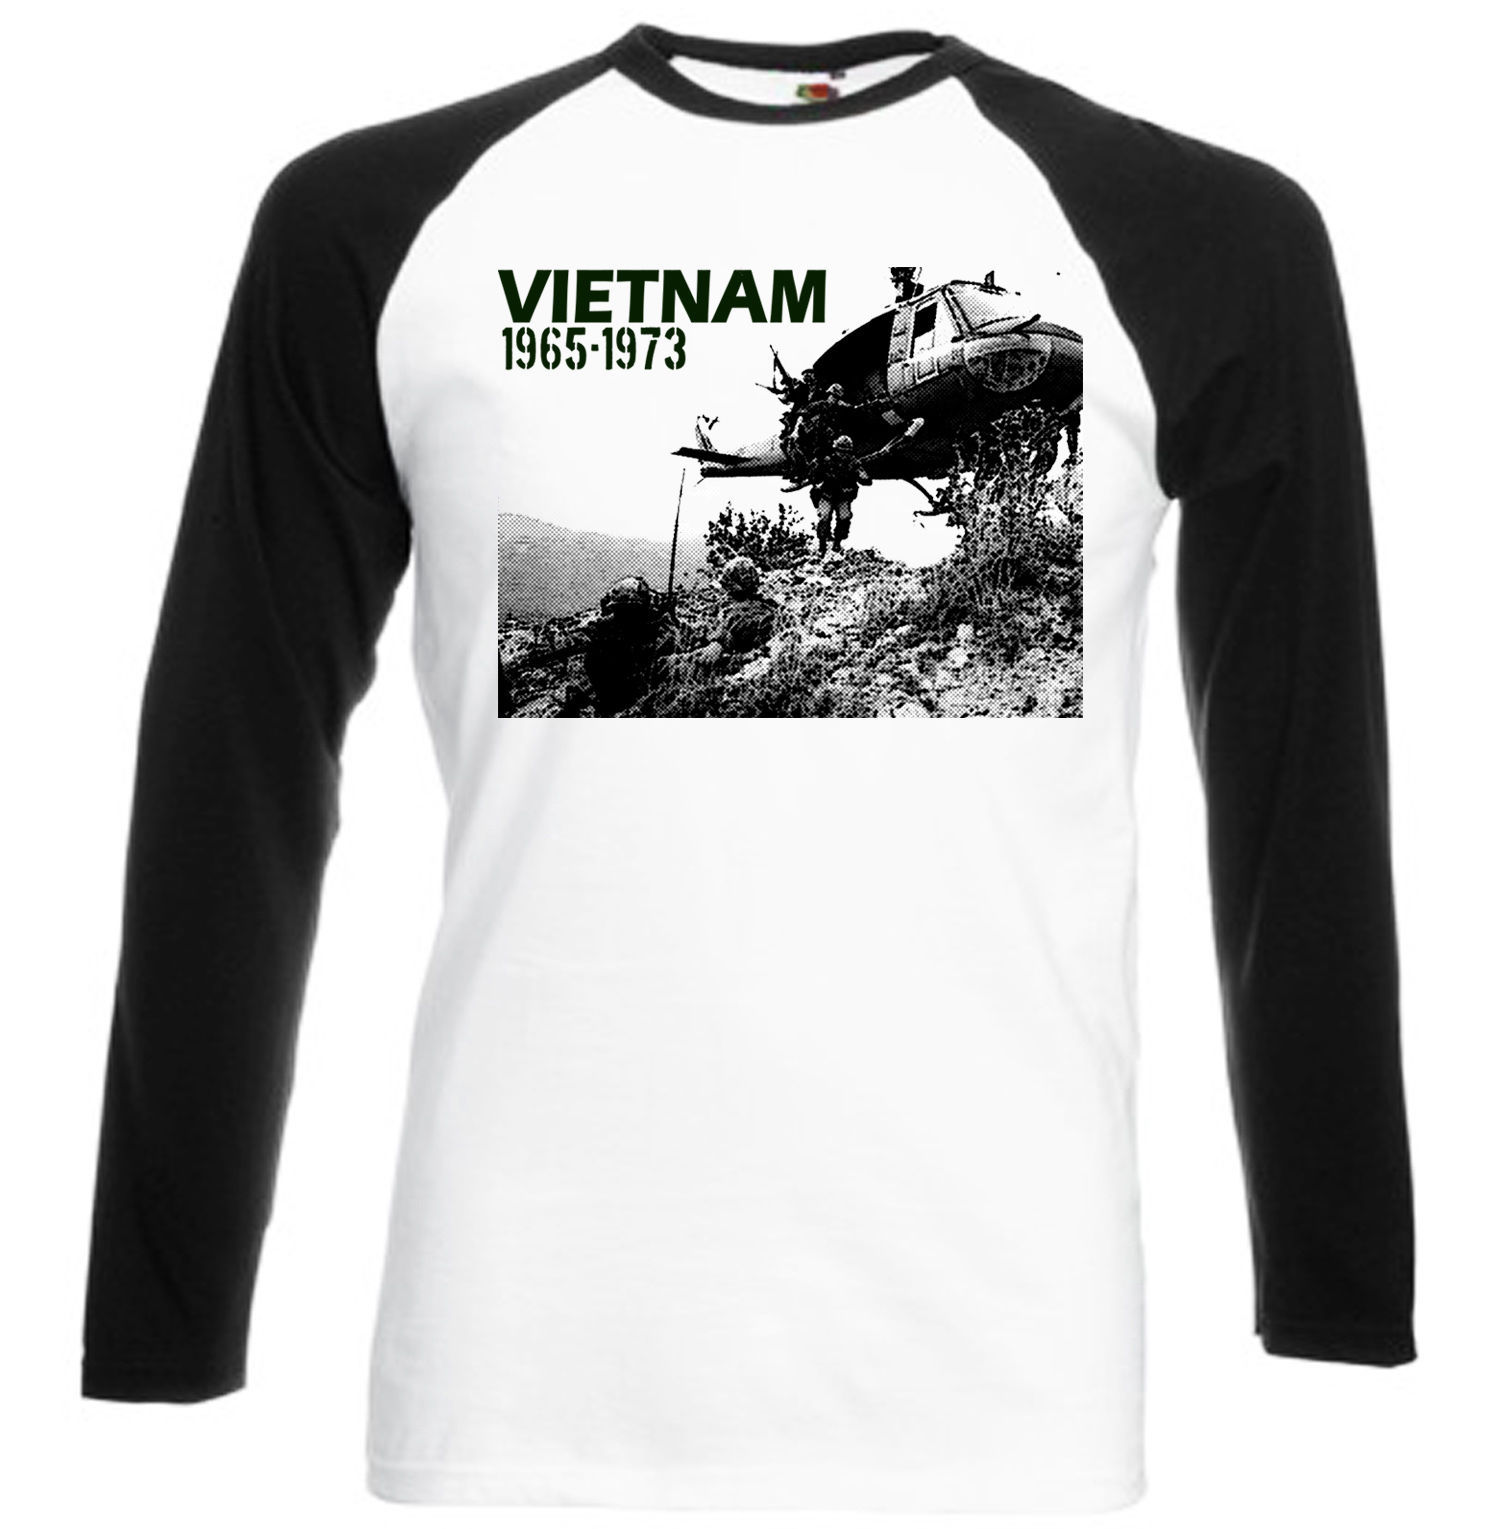 Primary image for USA VIETNAM WAR HELICOPTER - BLACK SLEEVED BASEBALL TSHIRT S-M-L-XL-XXL